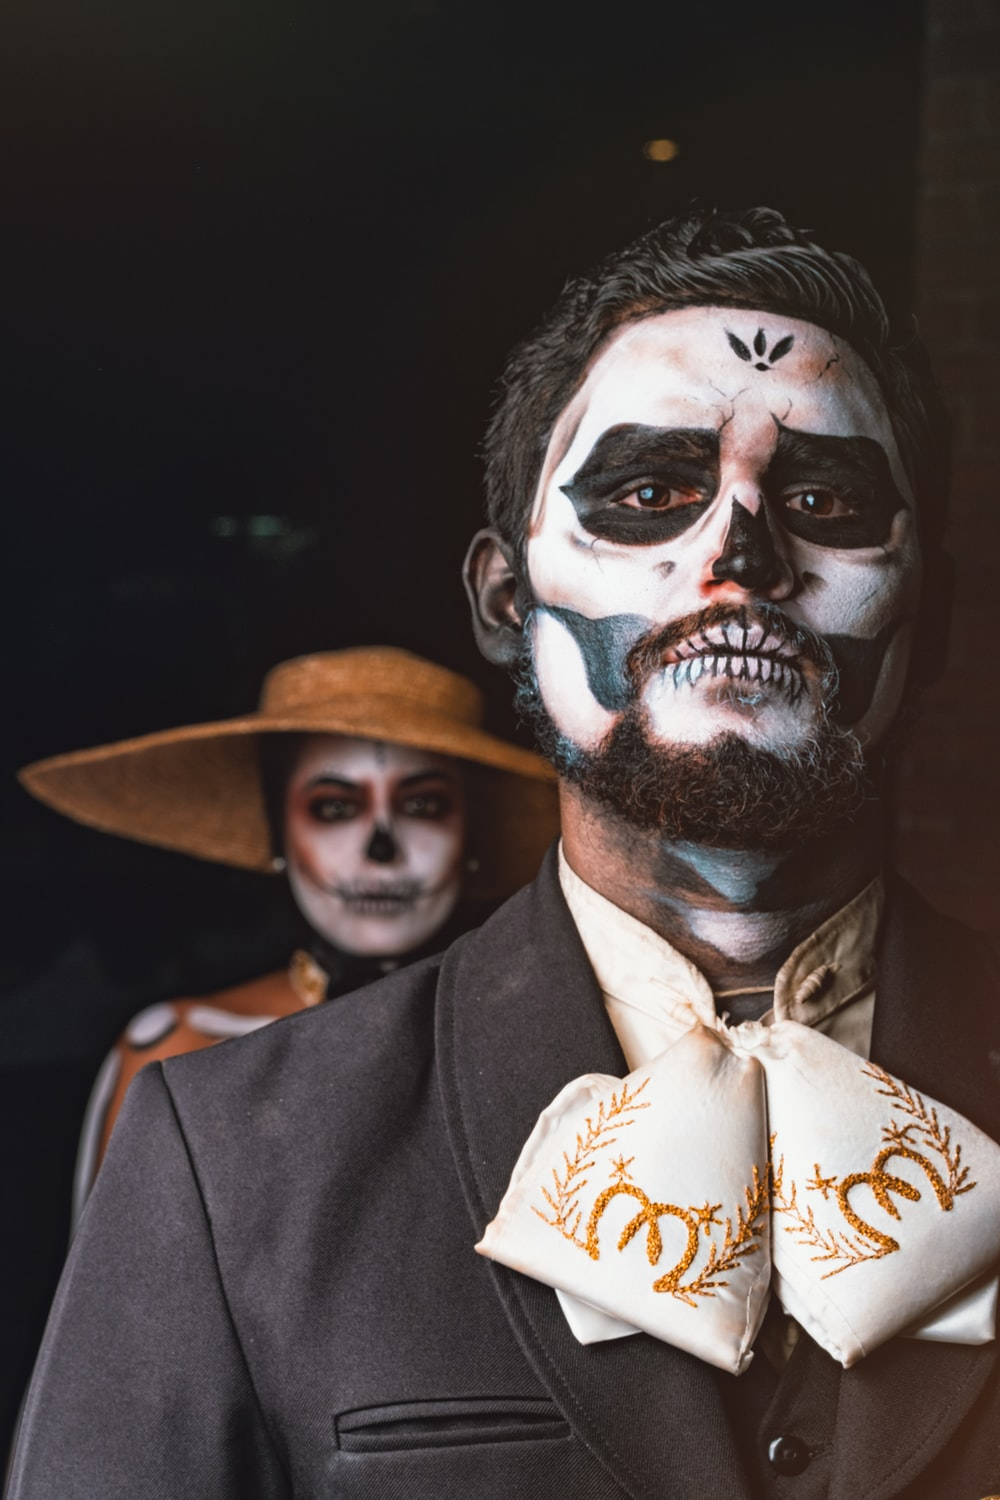 man in black suit with white and black face paint